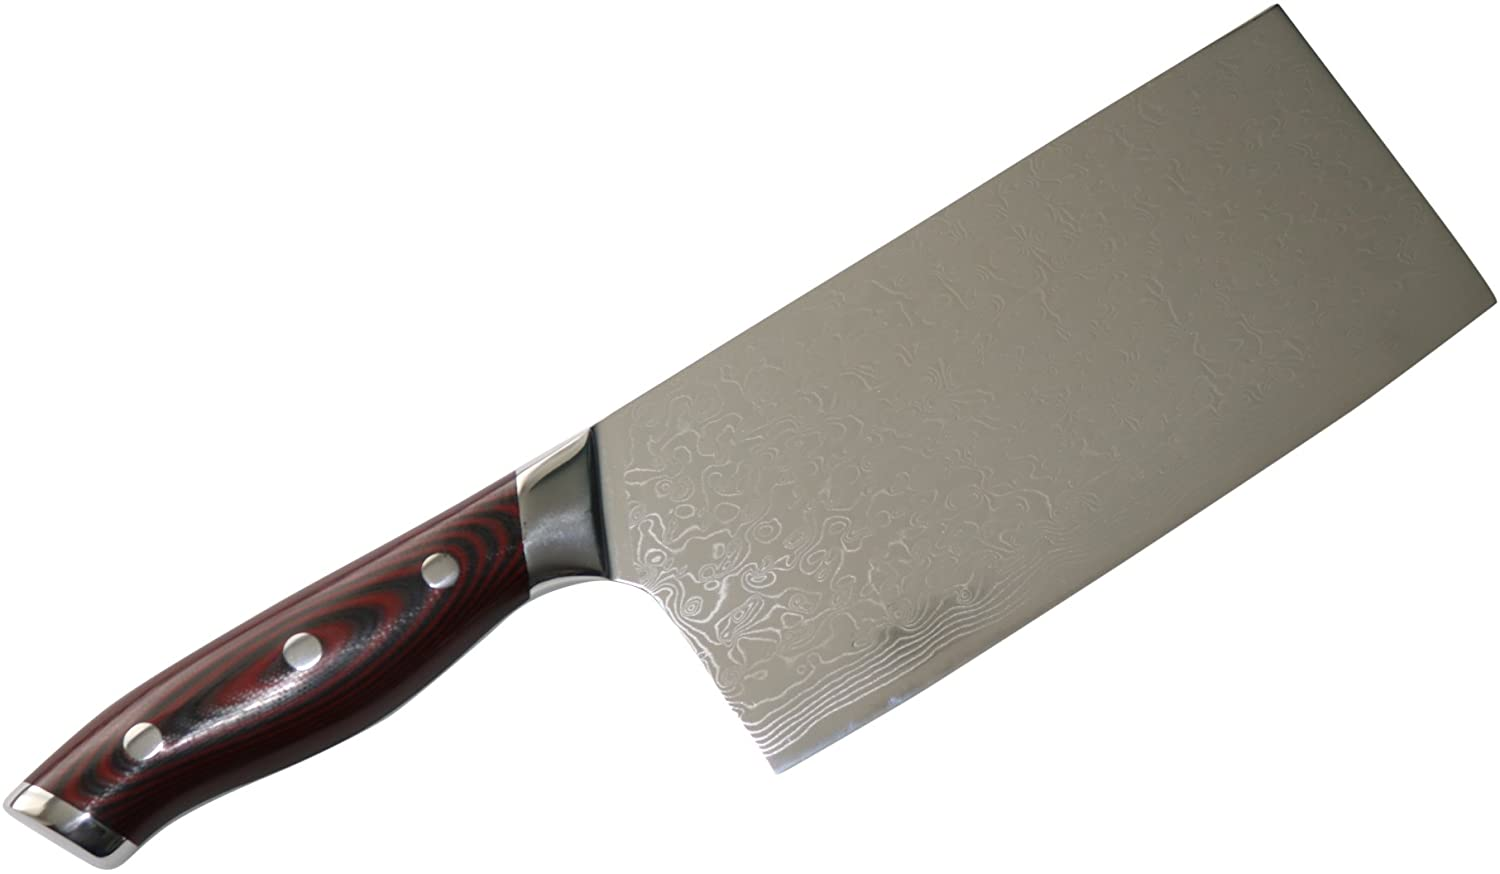 7-inch Professional (80 mm width) Damascus Chopper Knife by Kamosoto with High Carbon Japanese 67 Layers VG-10 Damascus Stainless Steel, G10 Handle and Beautiful Tiny Wave Blade Pattern, KAM582